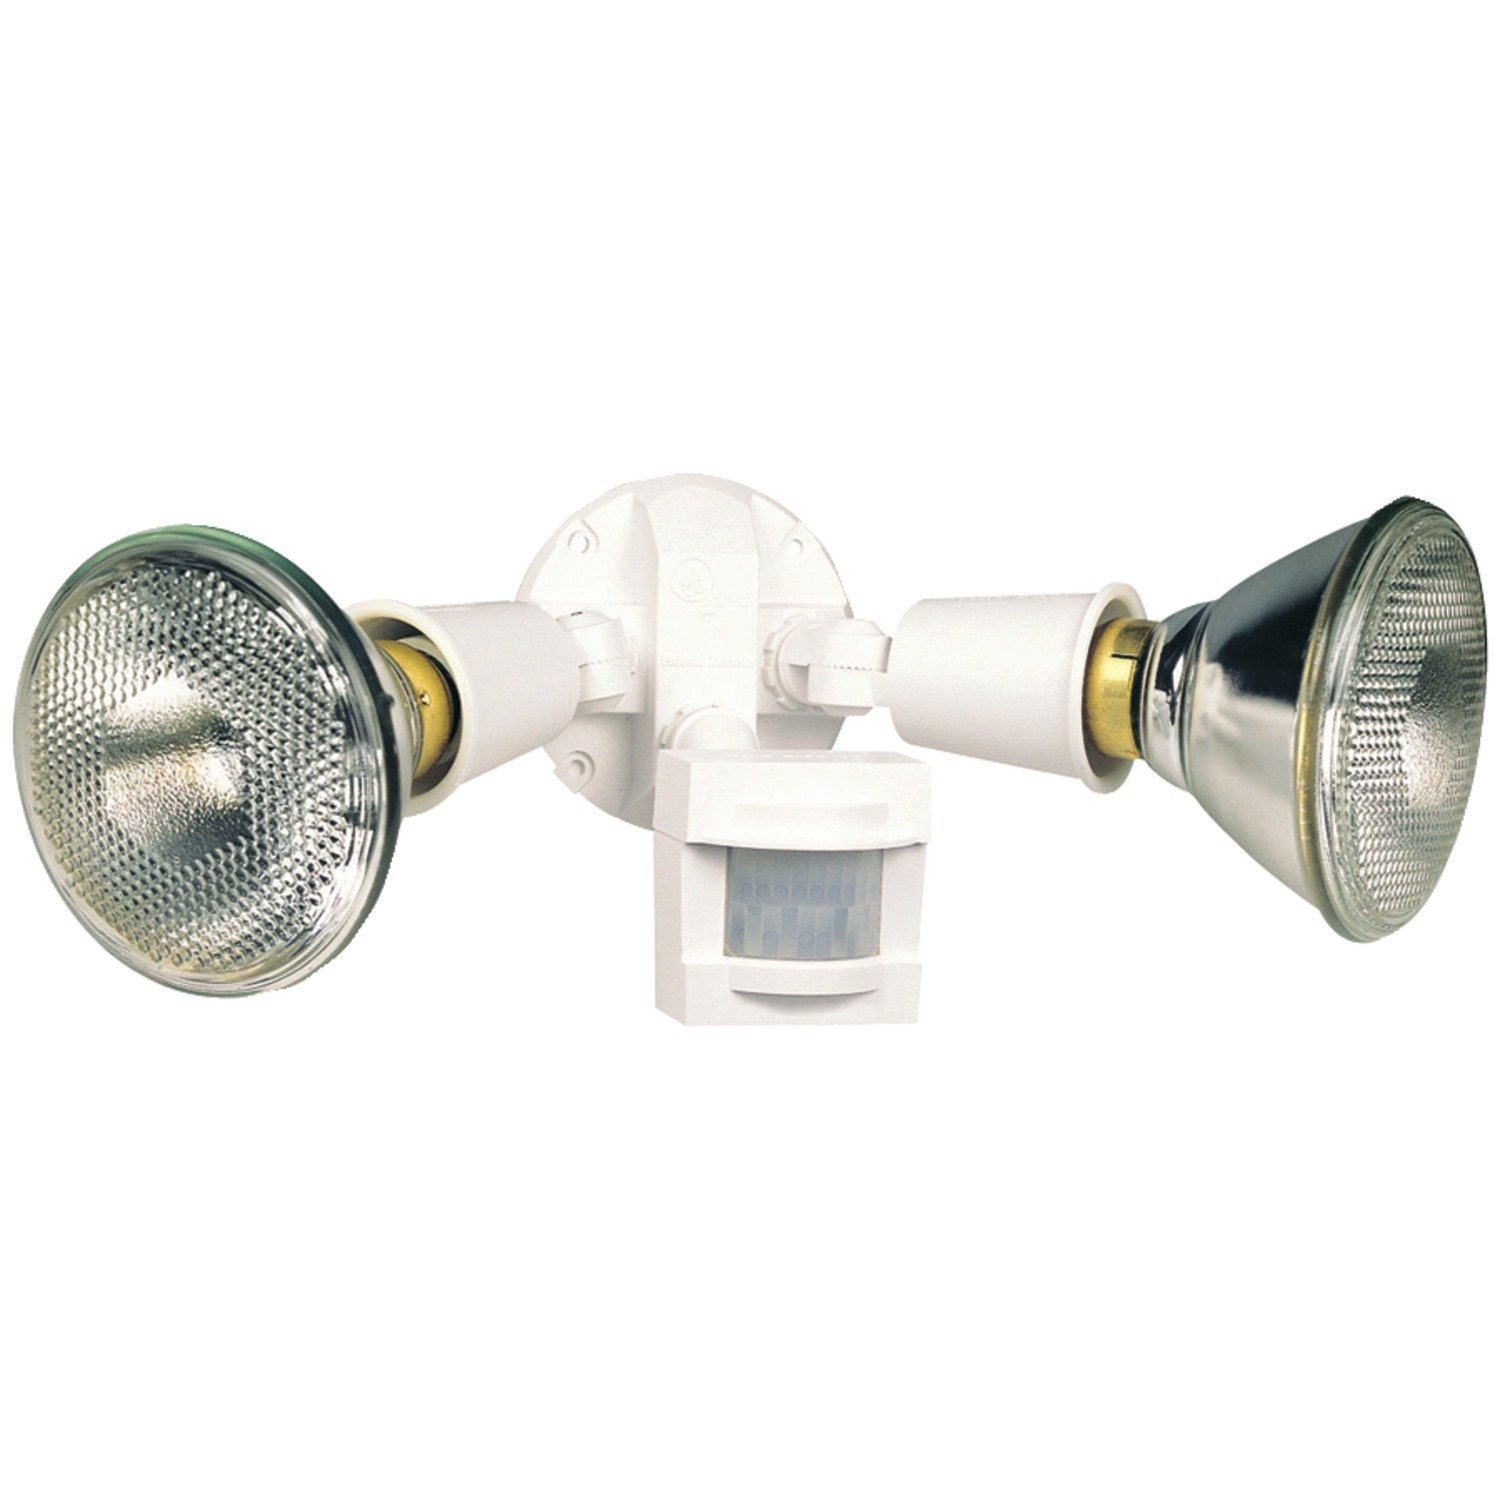 Heath Zenith SL-5408-WH 110-Degree Motion-Sensing Flood Security Light, White